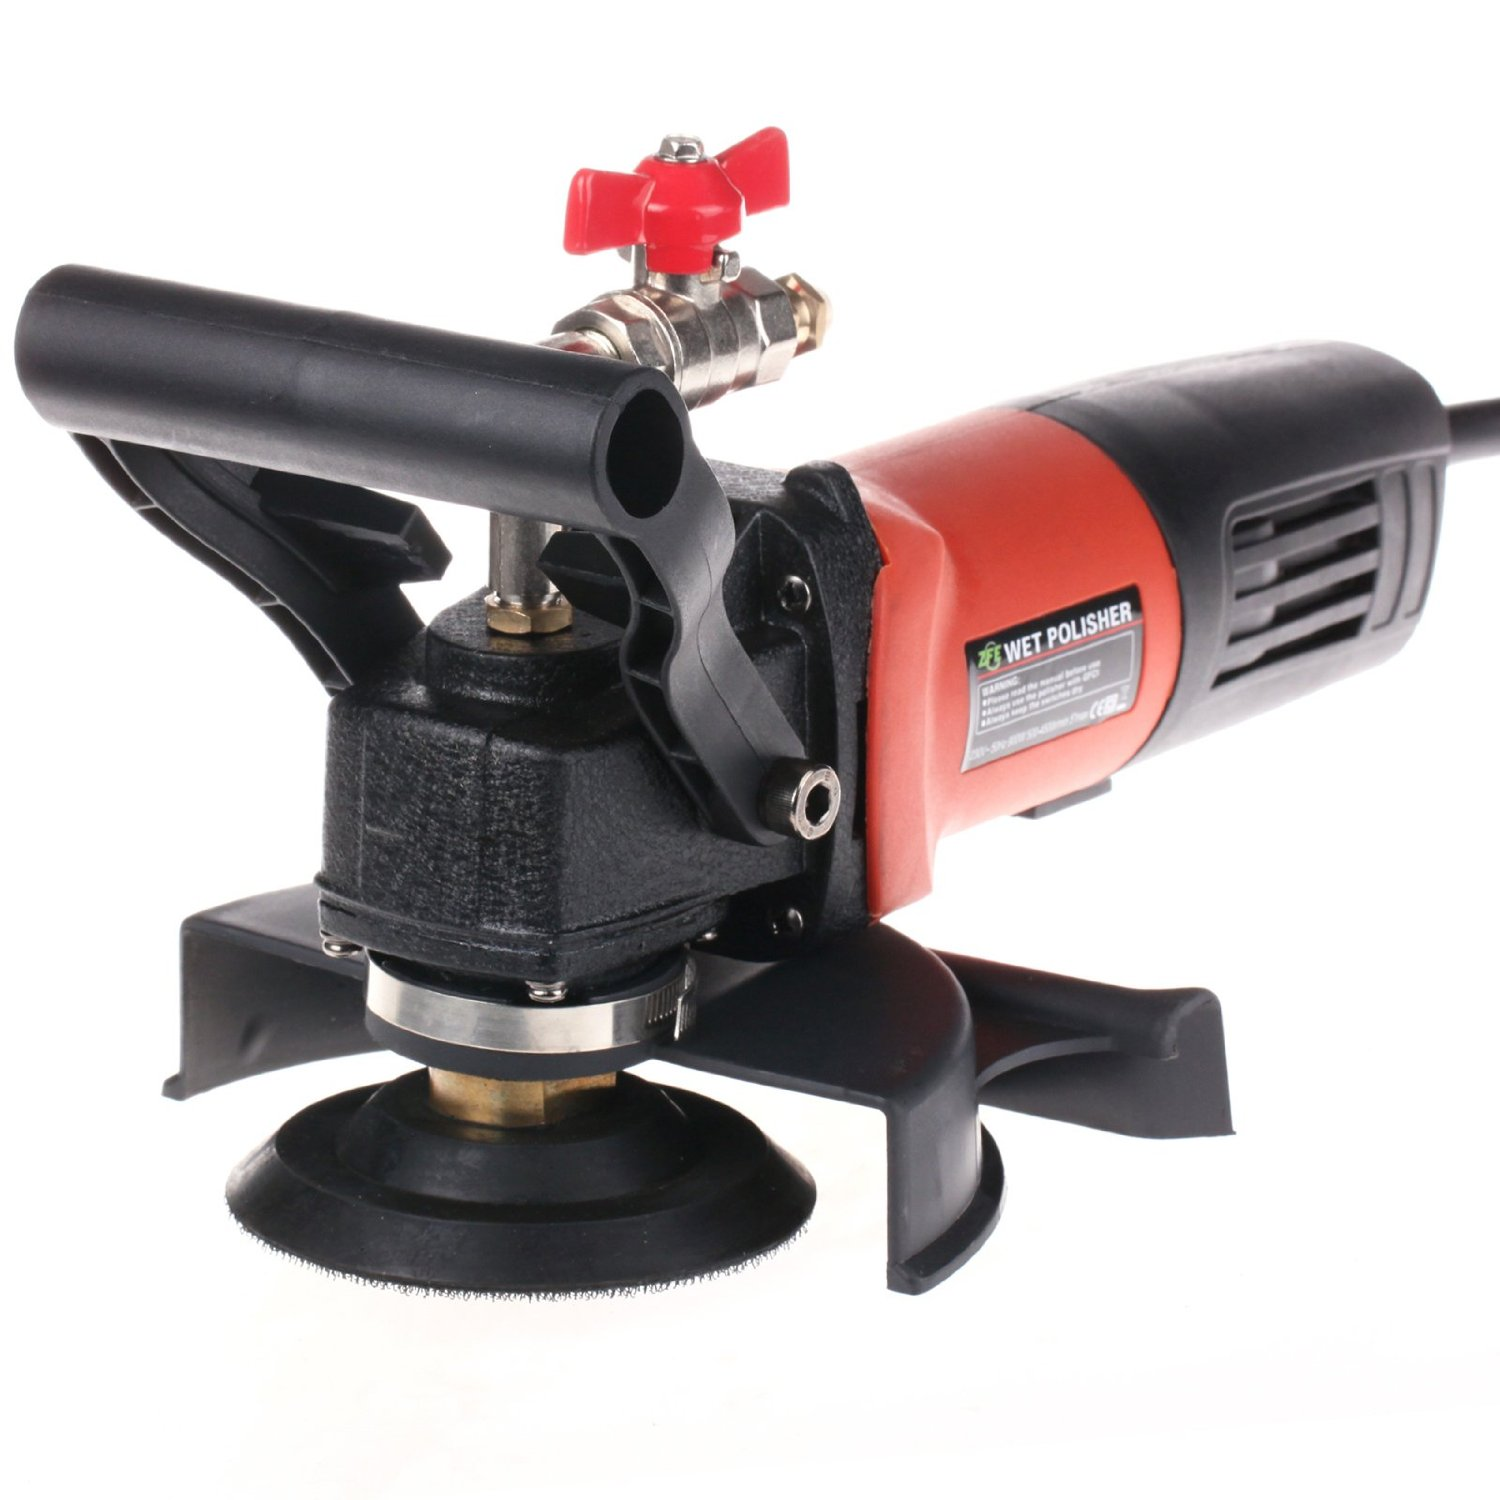 Electric Stone Polisher